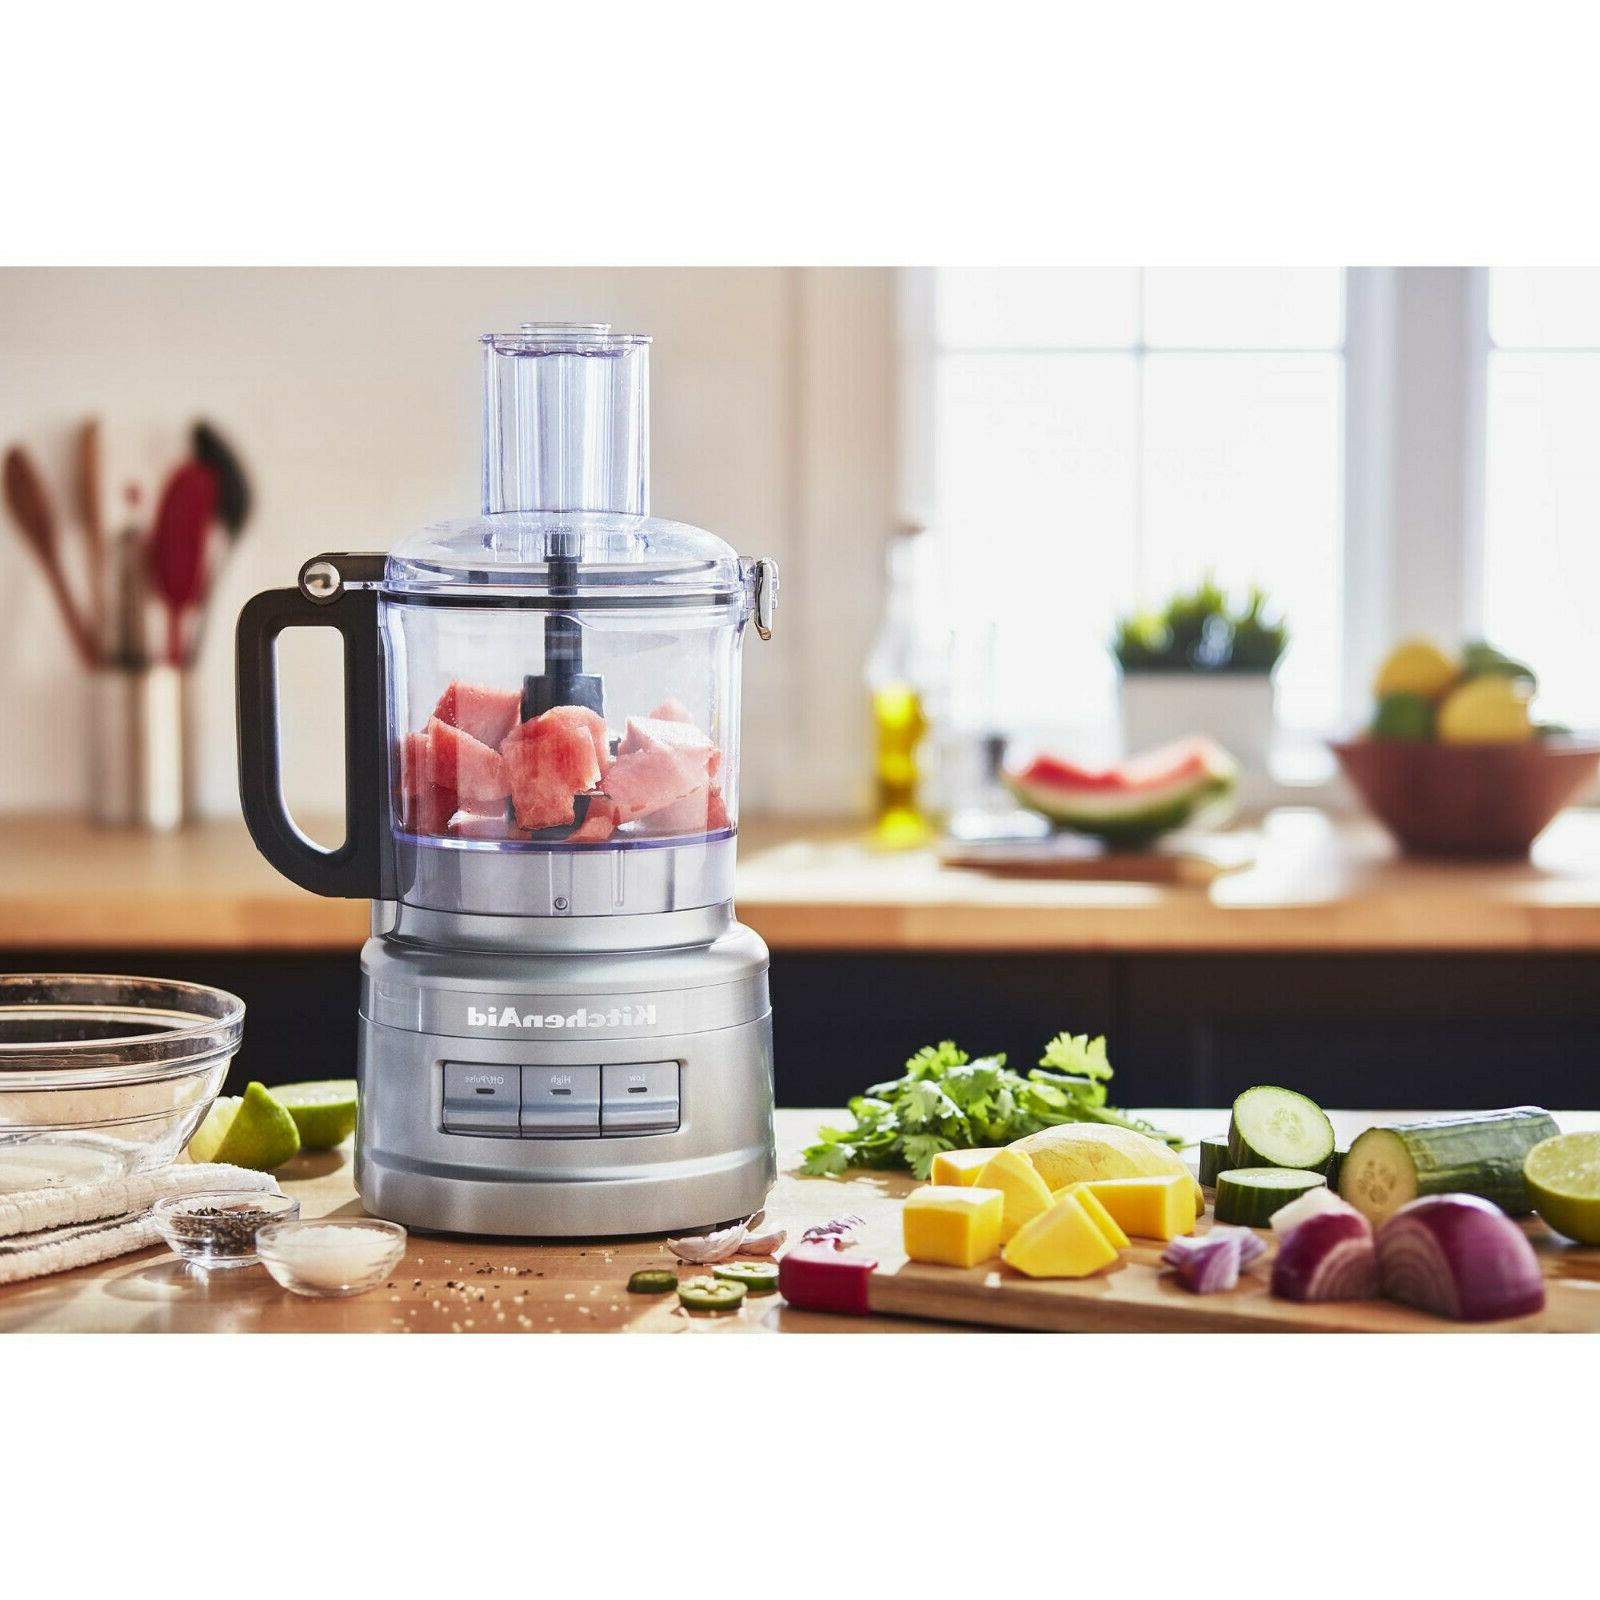 KitchenAid 7 Contour Silver